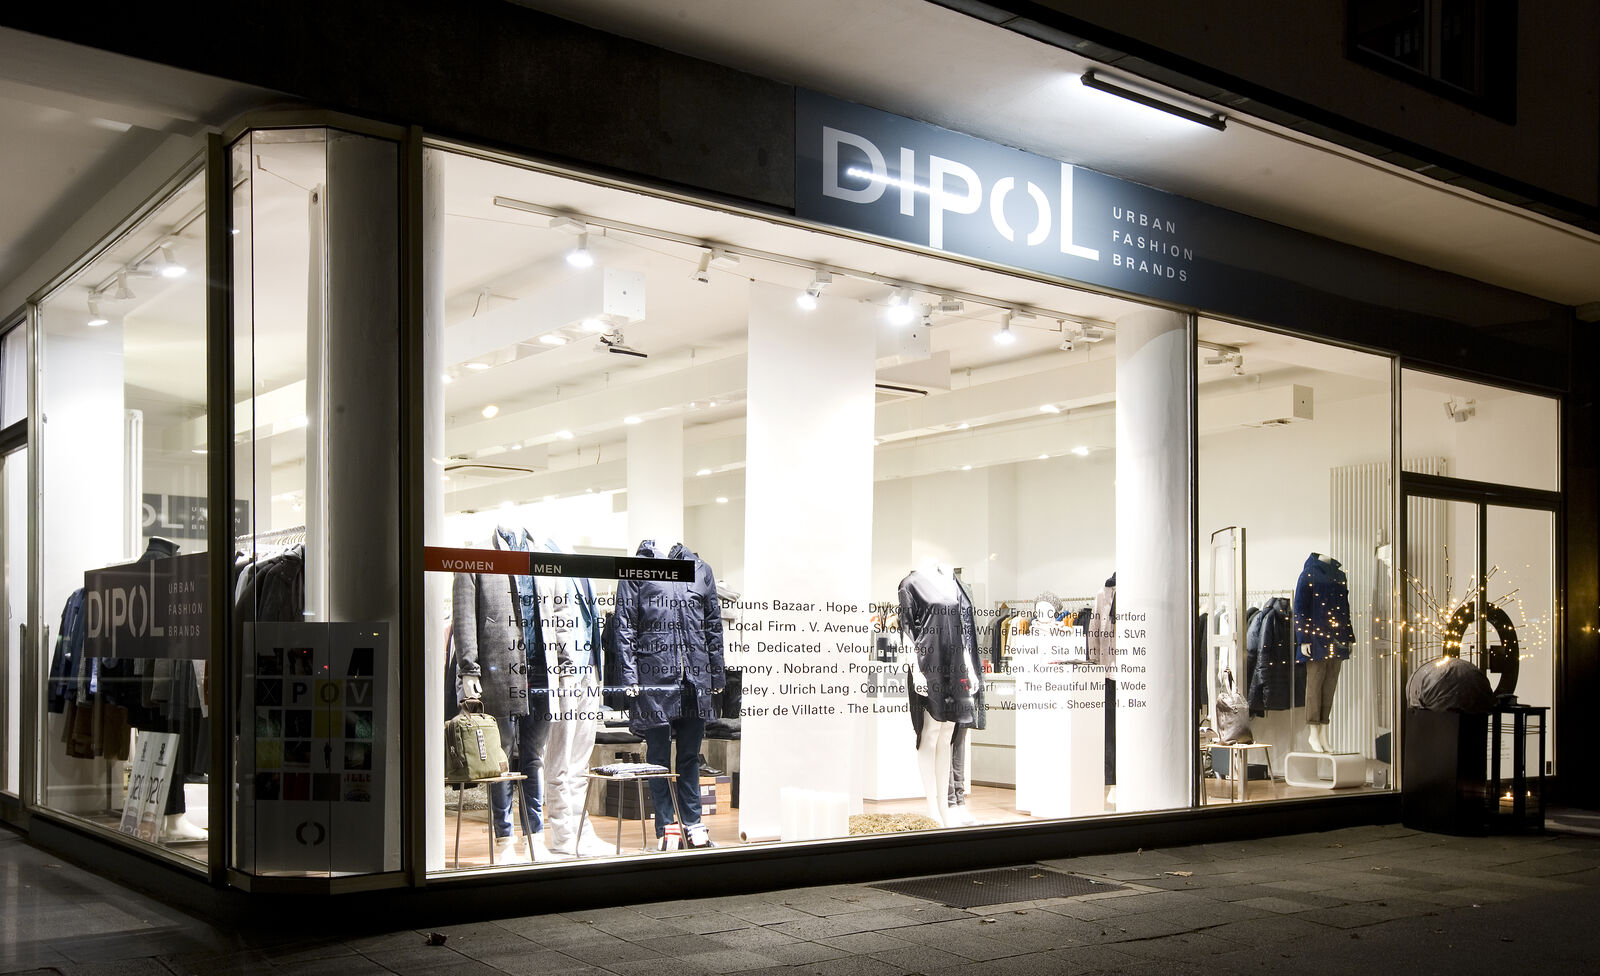 dipol - urban fashion brands in Mannheim (Bild 16)